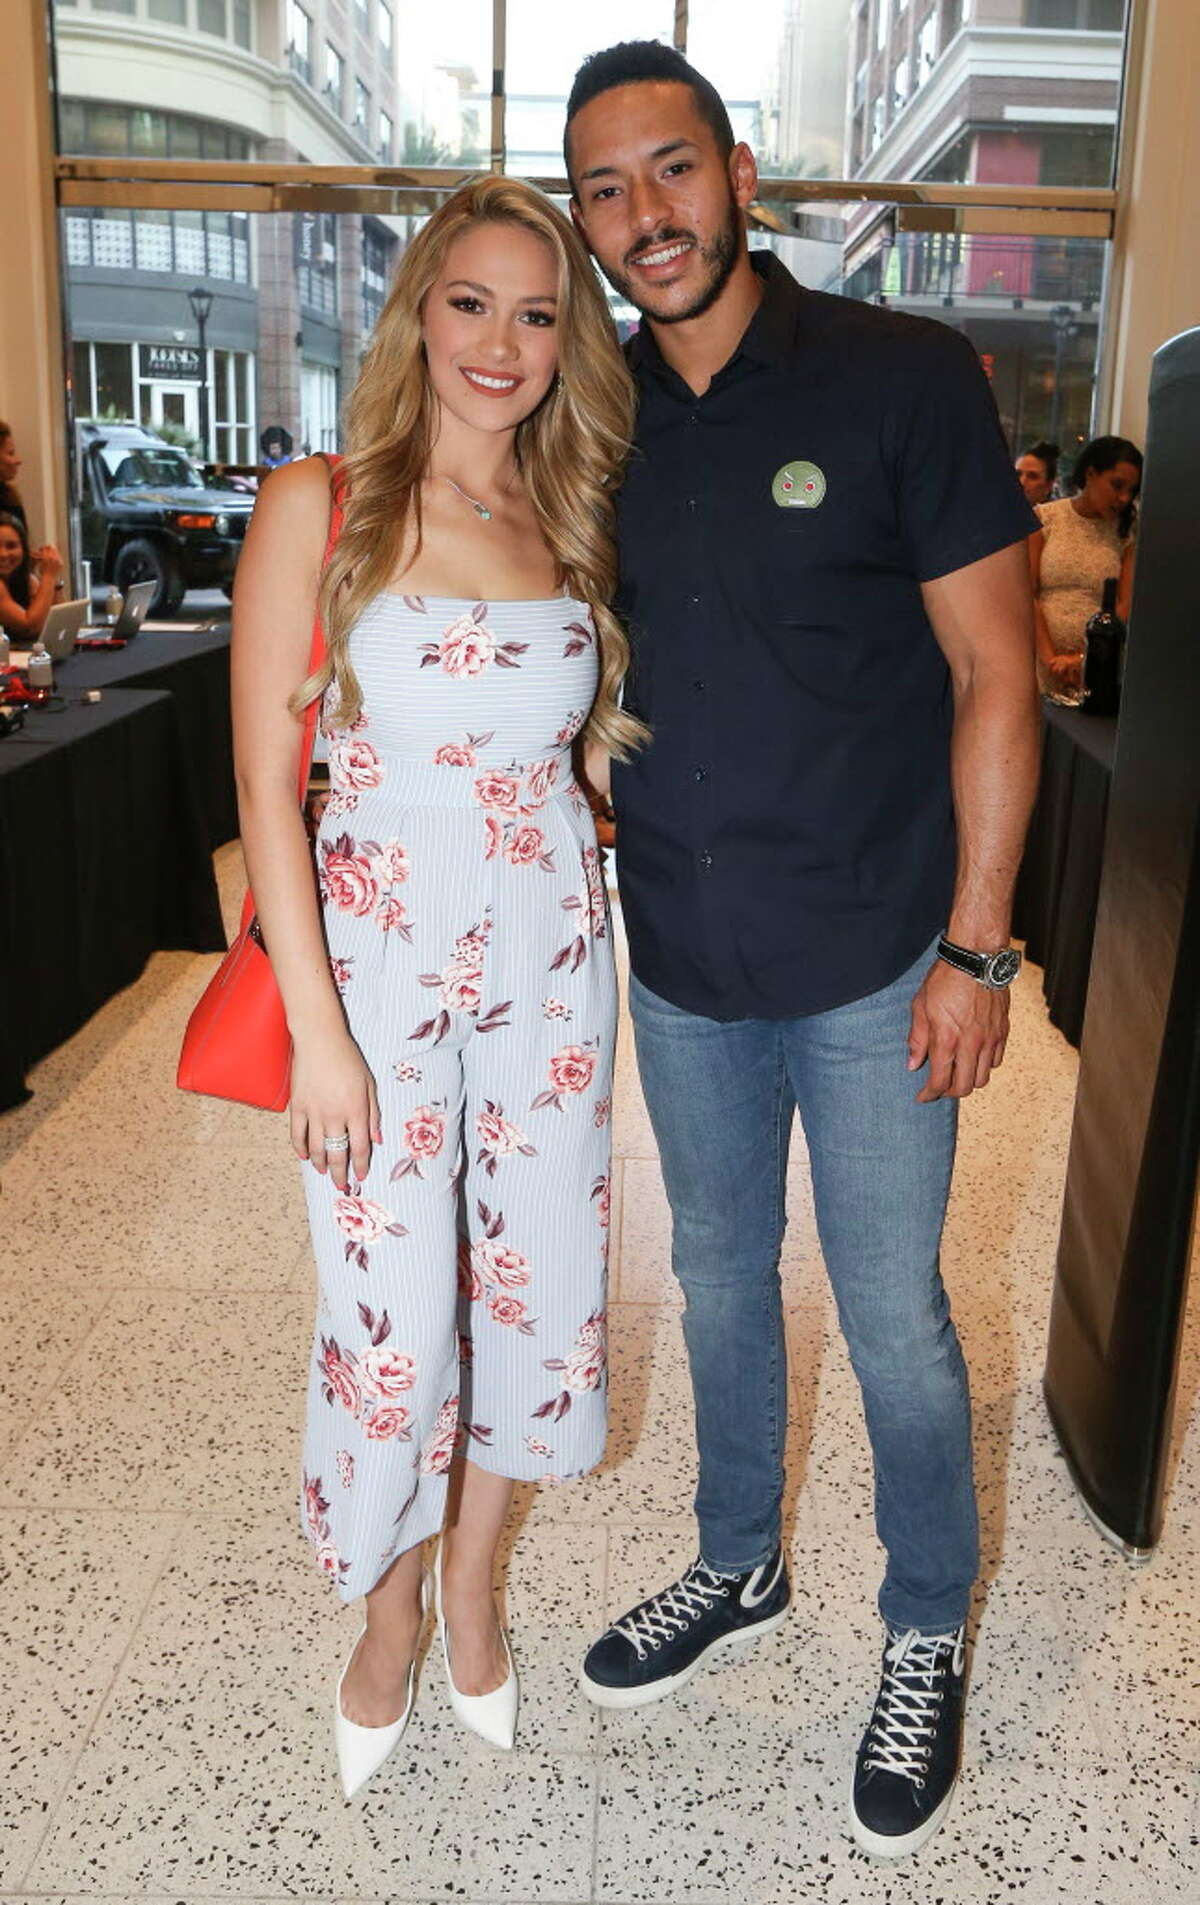 Houston Astros shortstop Carlos Correa is set to marry Daniella Rodriguez in December 2019. Houston Astros player Carlos Correa and fiancé Daniella Rodriguez pose for a photograph at